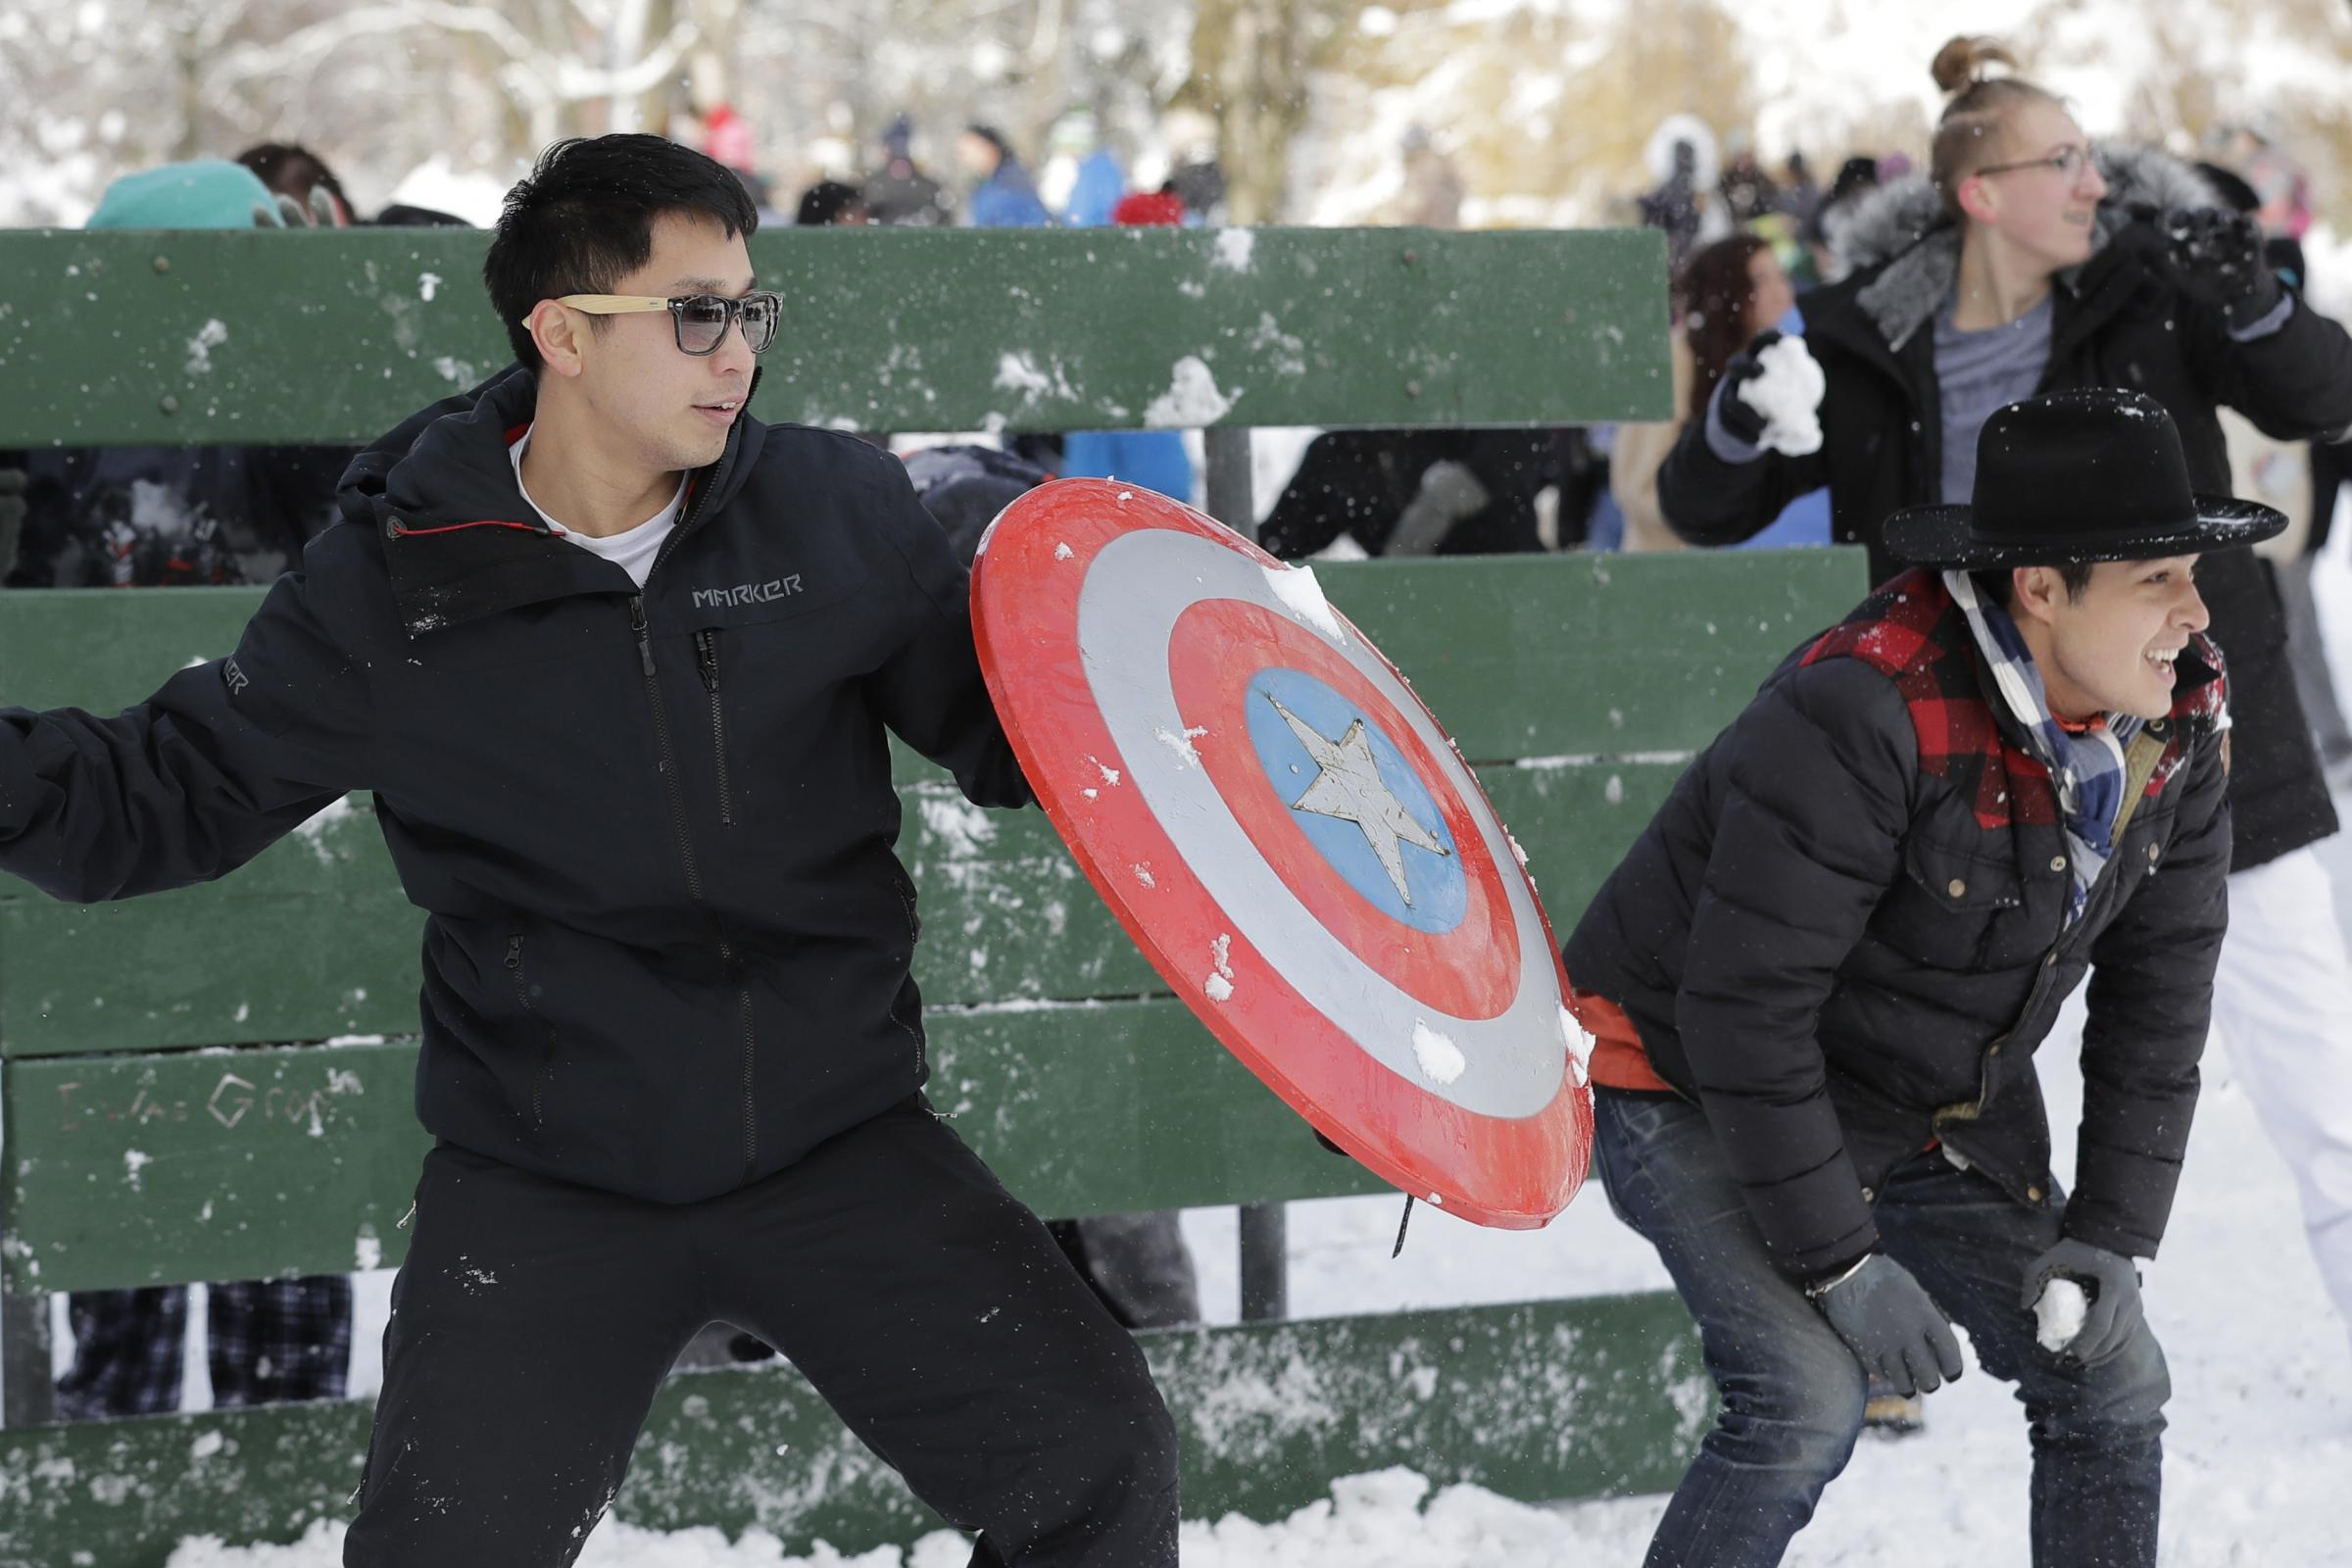 People armed themselves with shields while taking part in a public snowball fight in Tacoma, Washington